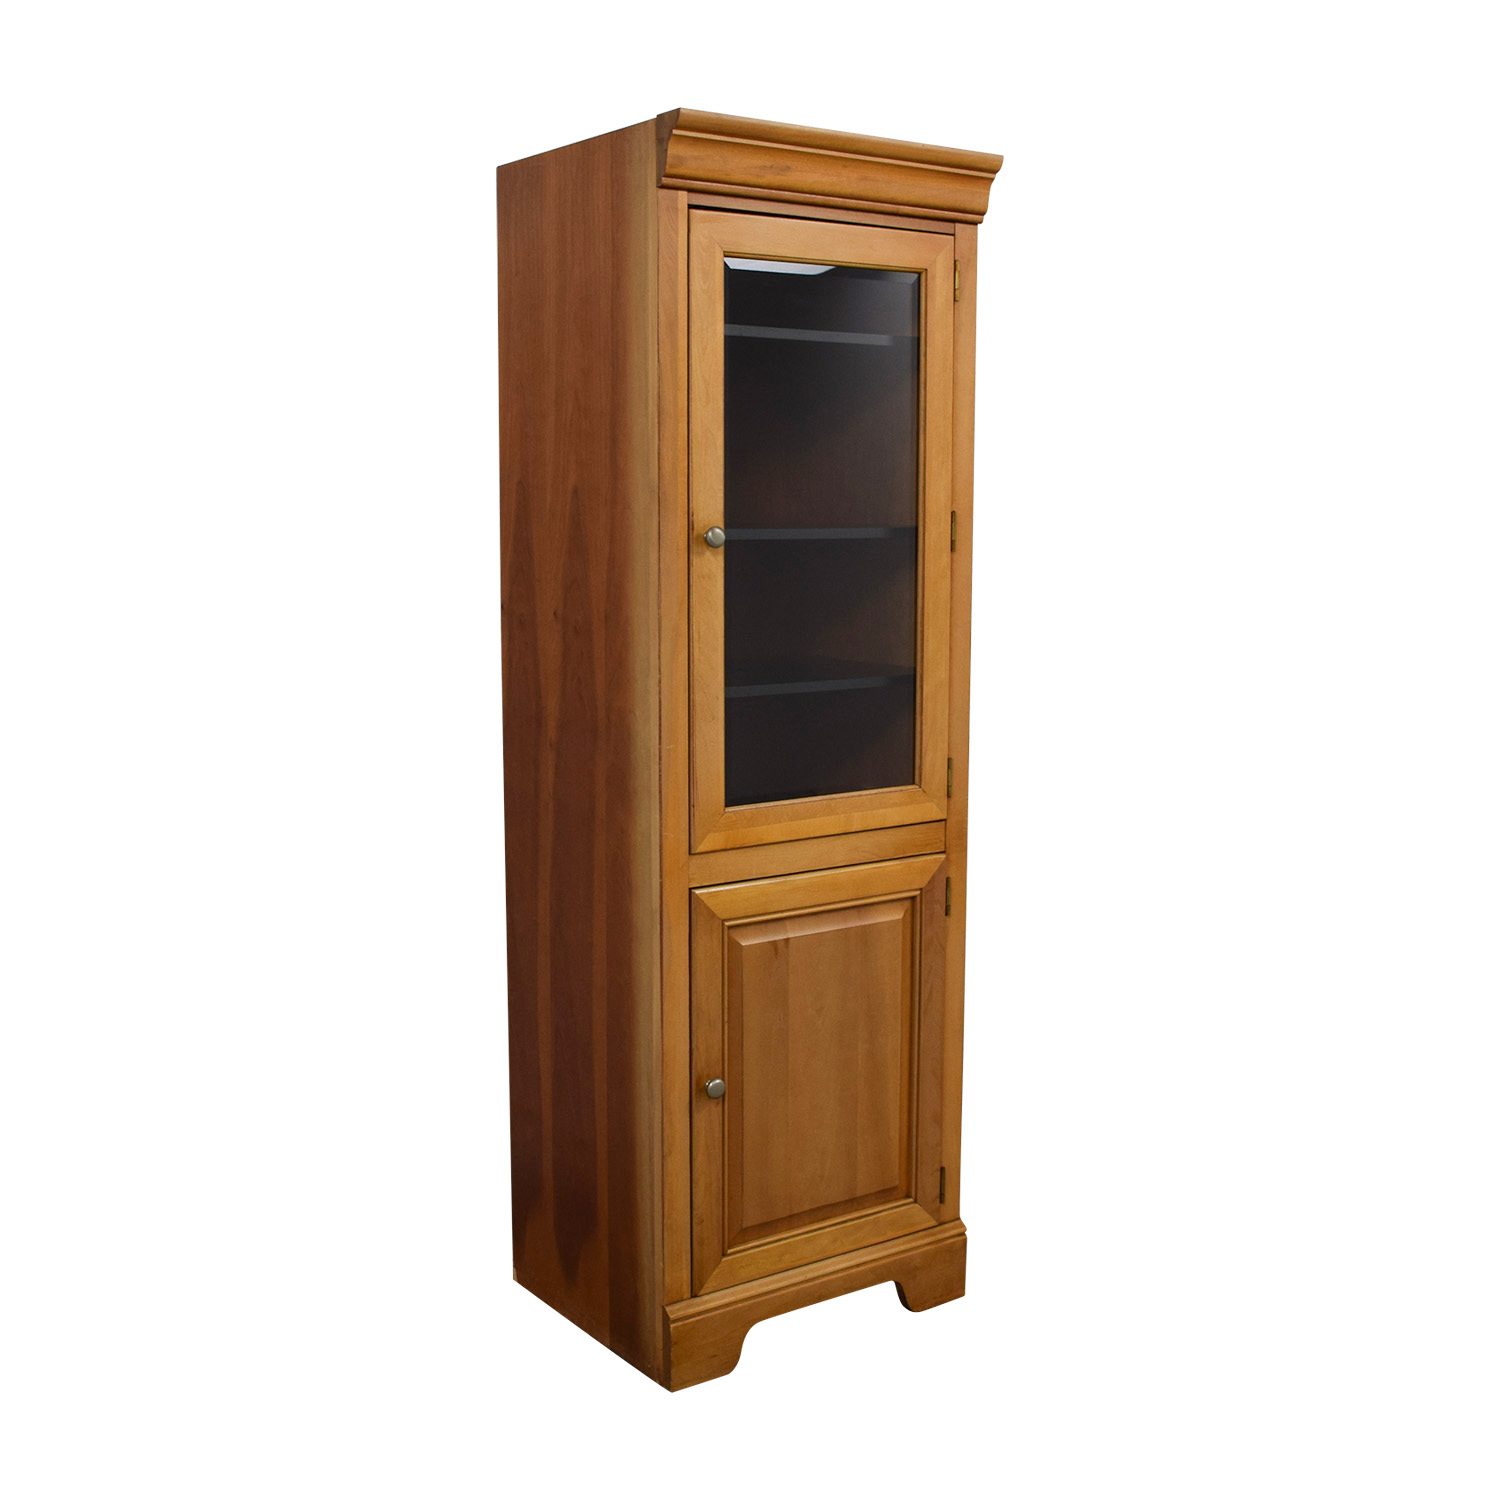 Stanley Furniture Company Stanley Furniture Company Tall Wood And Glass  Cabinet On Sale